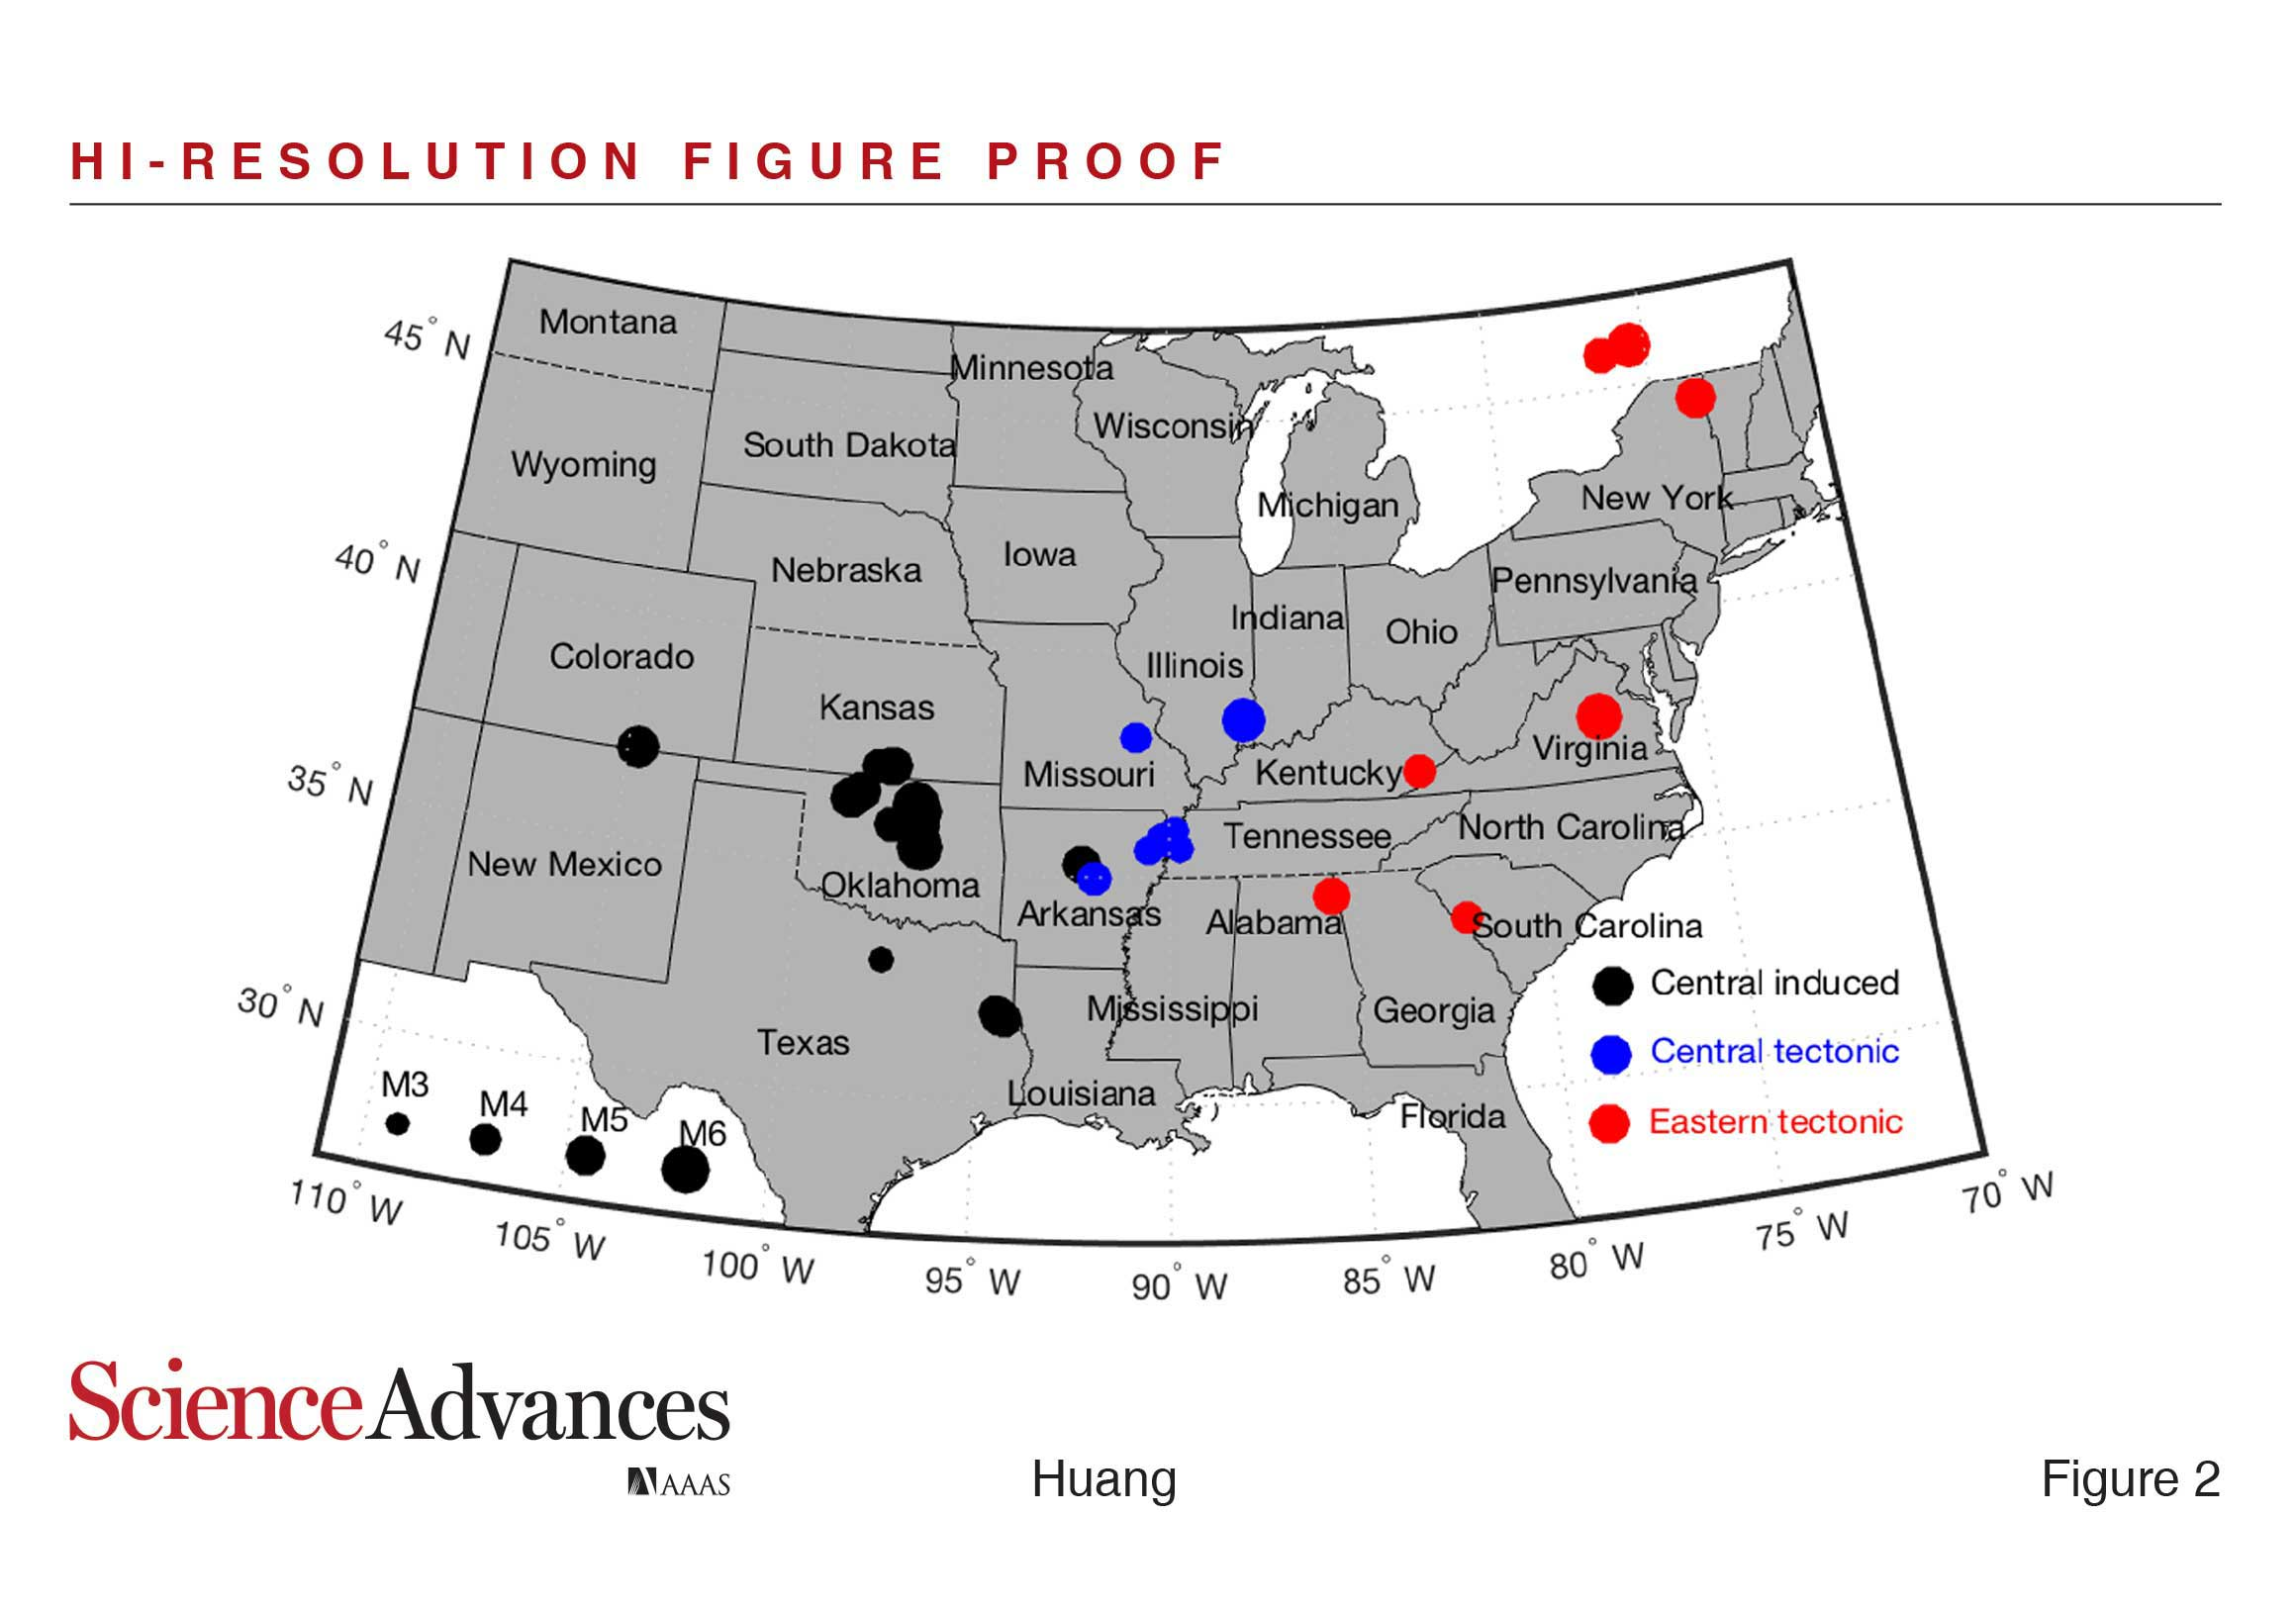 Locations of earthquakes analyzed in the study led by U-M seismologist Yihe Huang. Image credit: Huang, Ellsworth, Beroza, Science Advances 2017